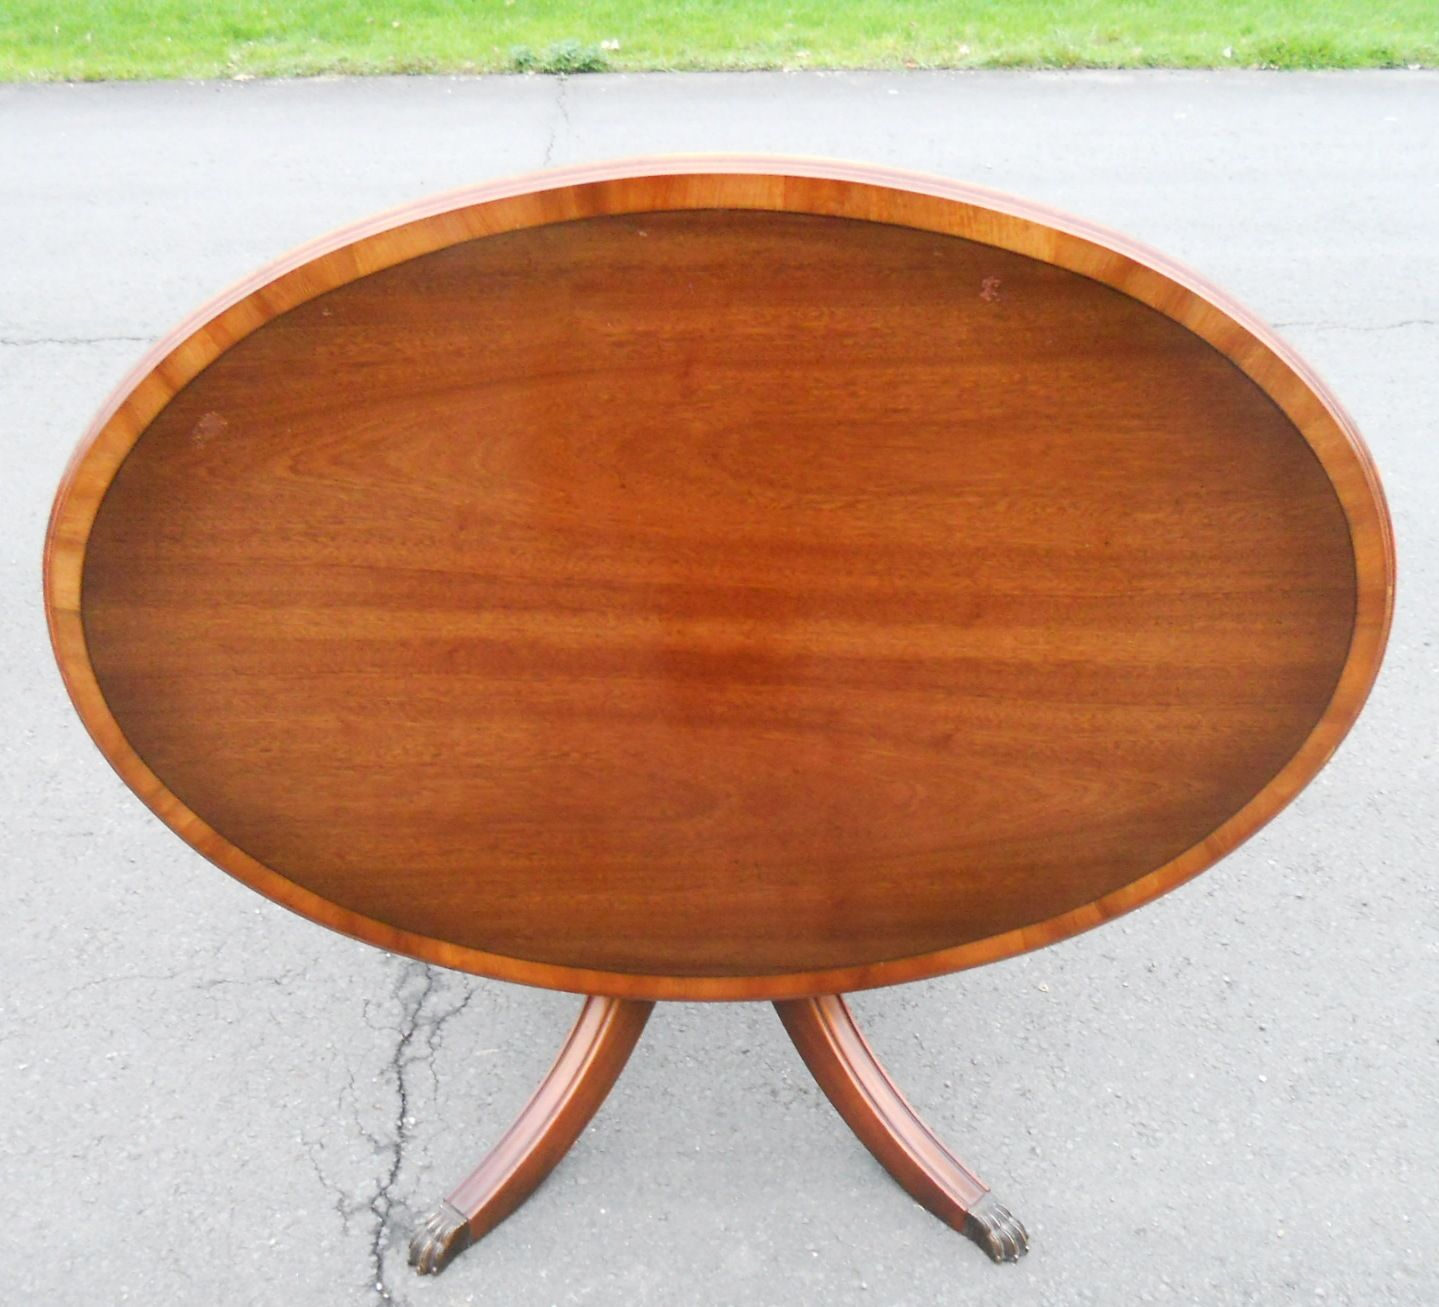 Oval Pedestal Coffee Table: Large Oval Mahogany Pedestal Coffee Table